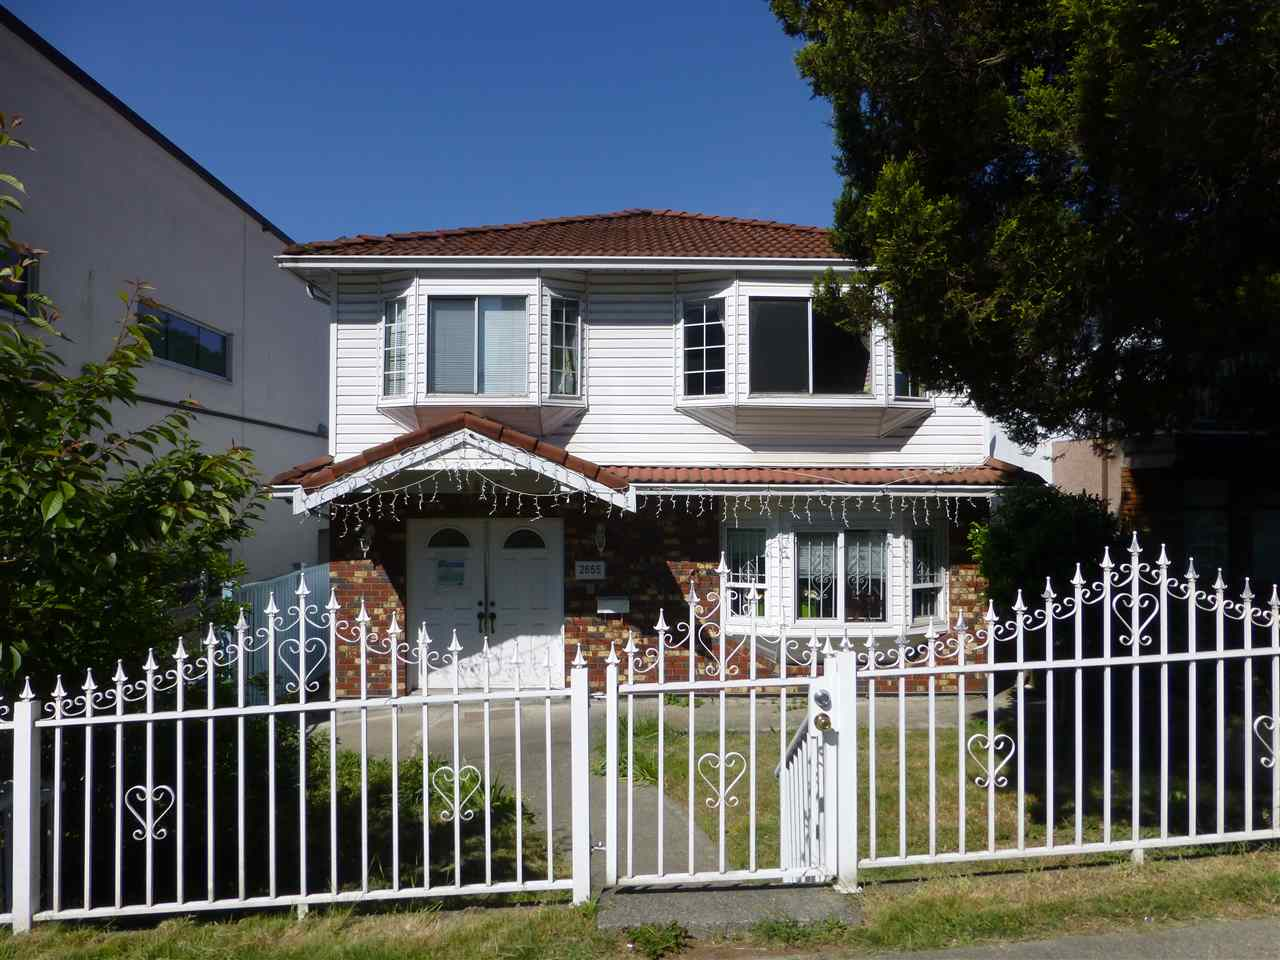 Main Photo: 2655 RENFREW Street in Vancouver: Renfrew VE House for sale (Vancouver East)  : MLS® # R2067647